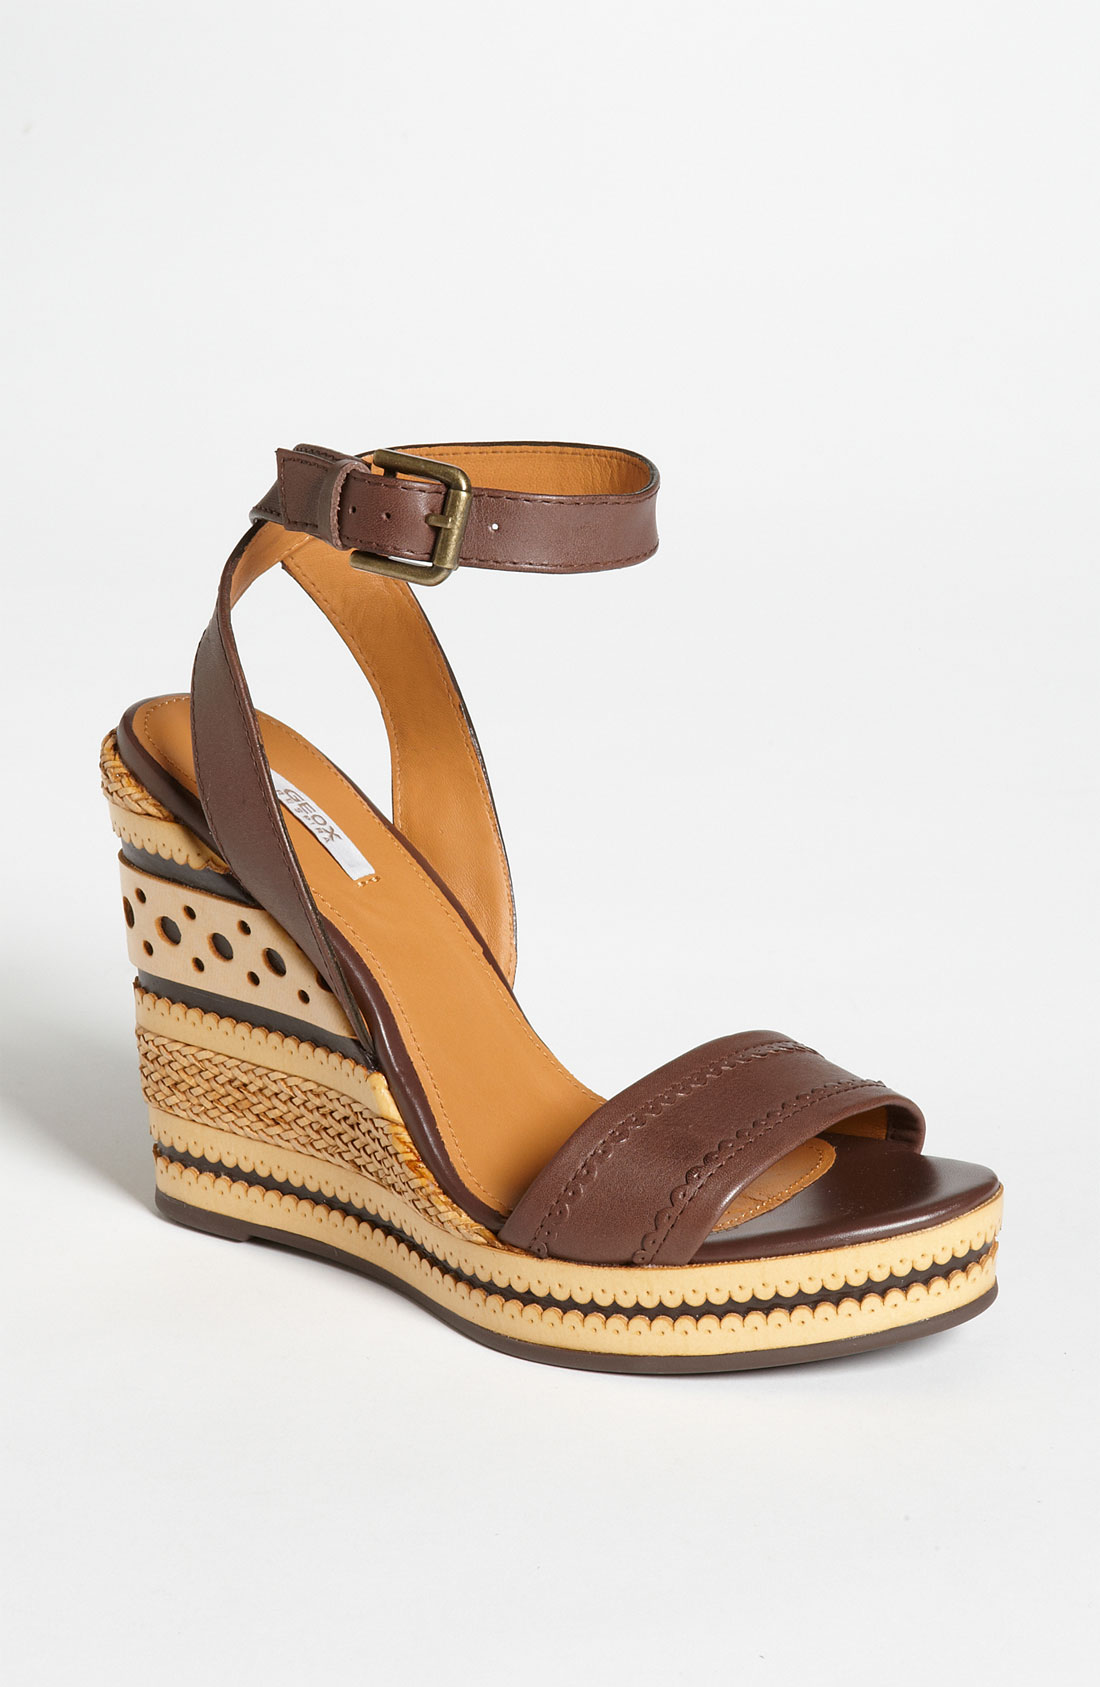 Geox Donna Peonia Sandal In Brown Coffee Lyst